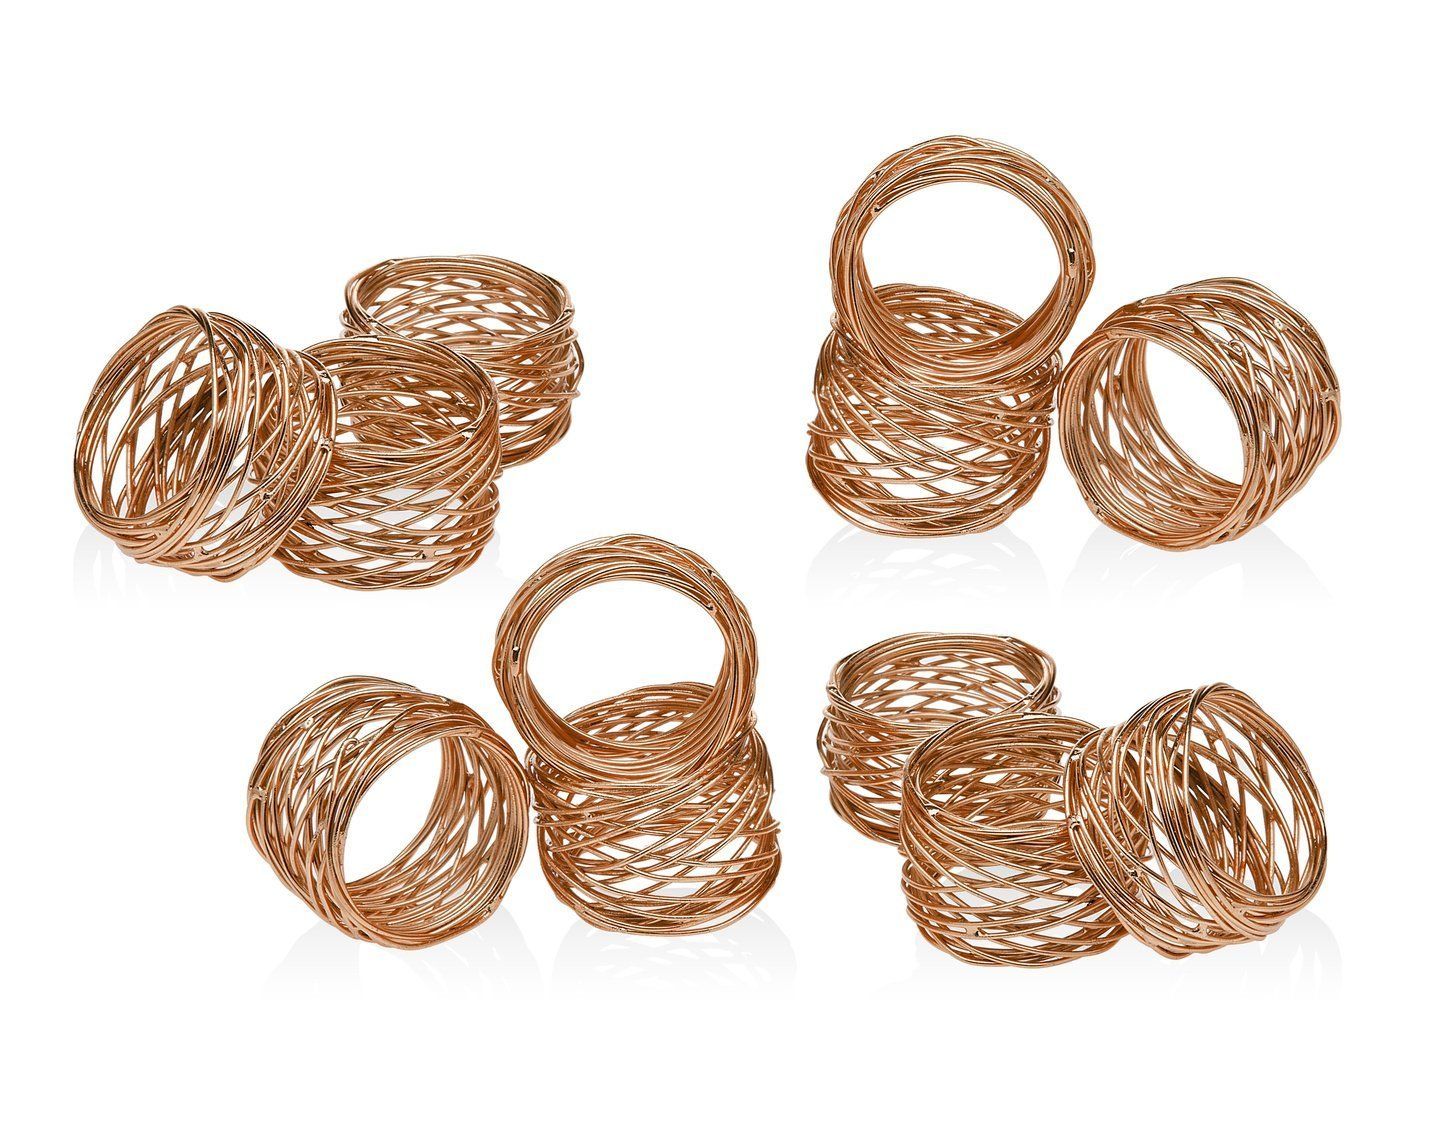 ITOS365 Set of 12 Round Mesh Napkin Rings Holder for Dinning Table Parties Everyday Ultimate Krafts